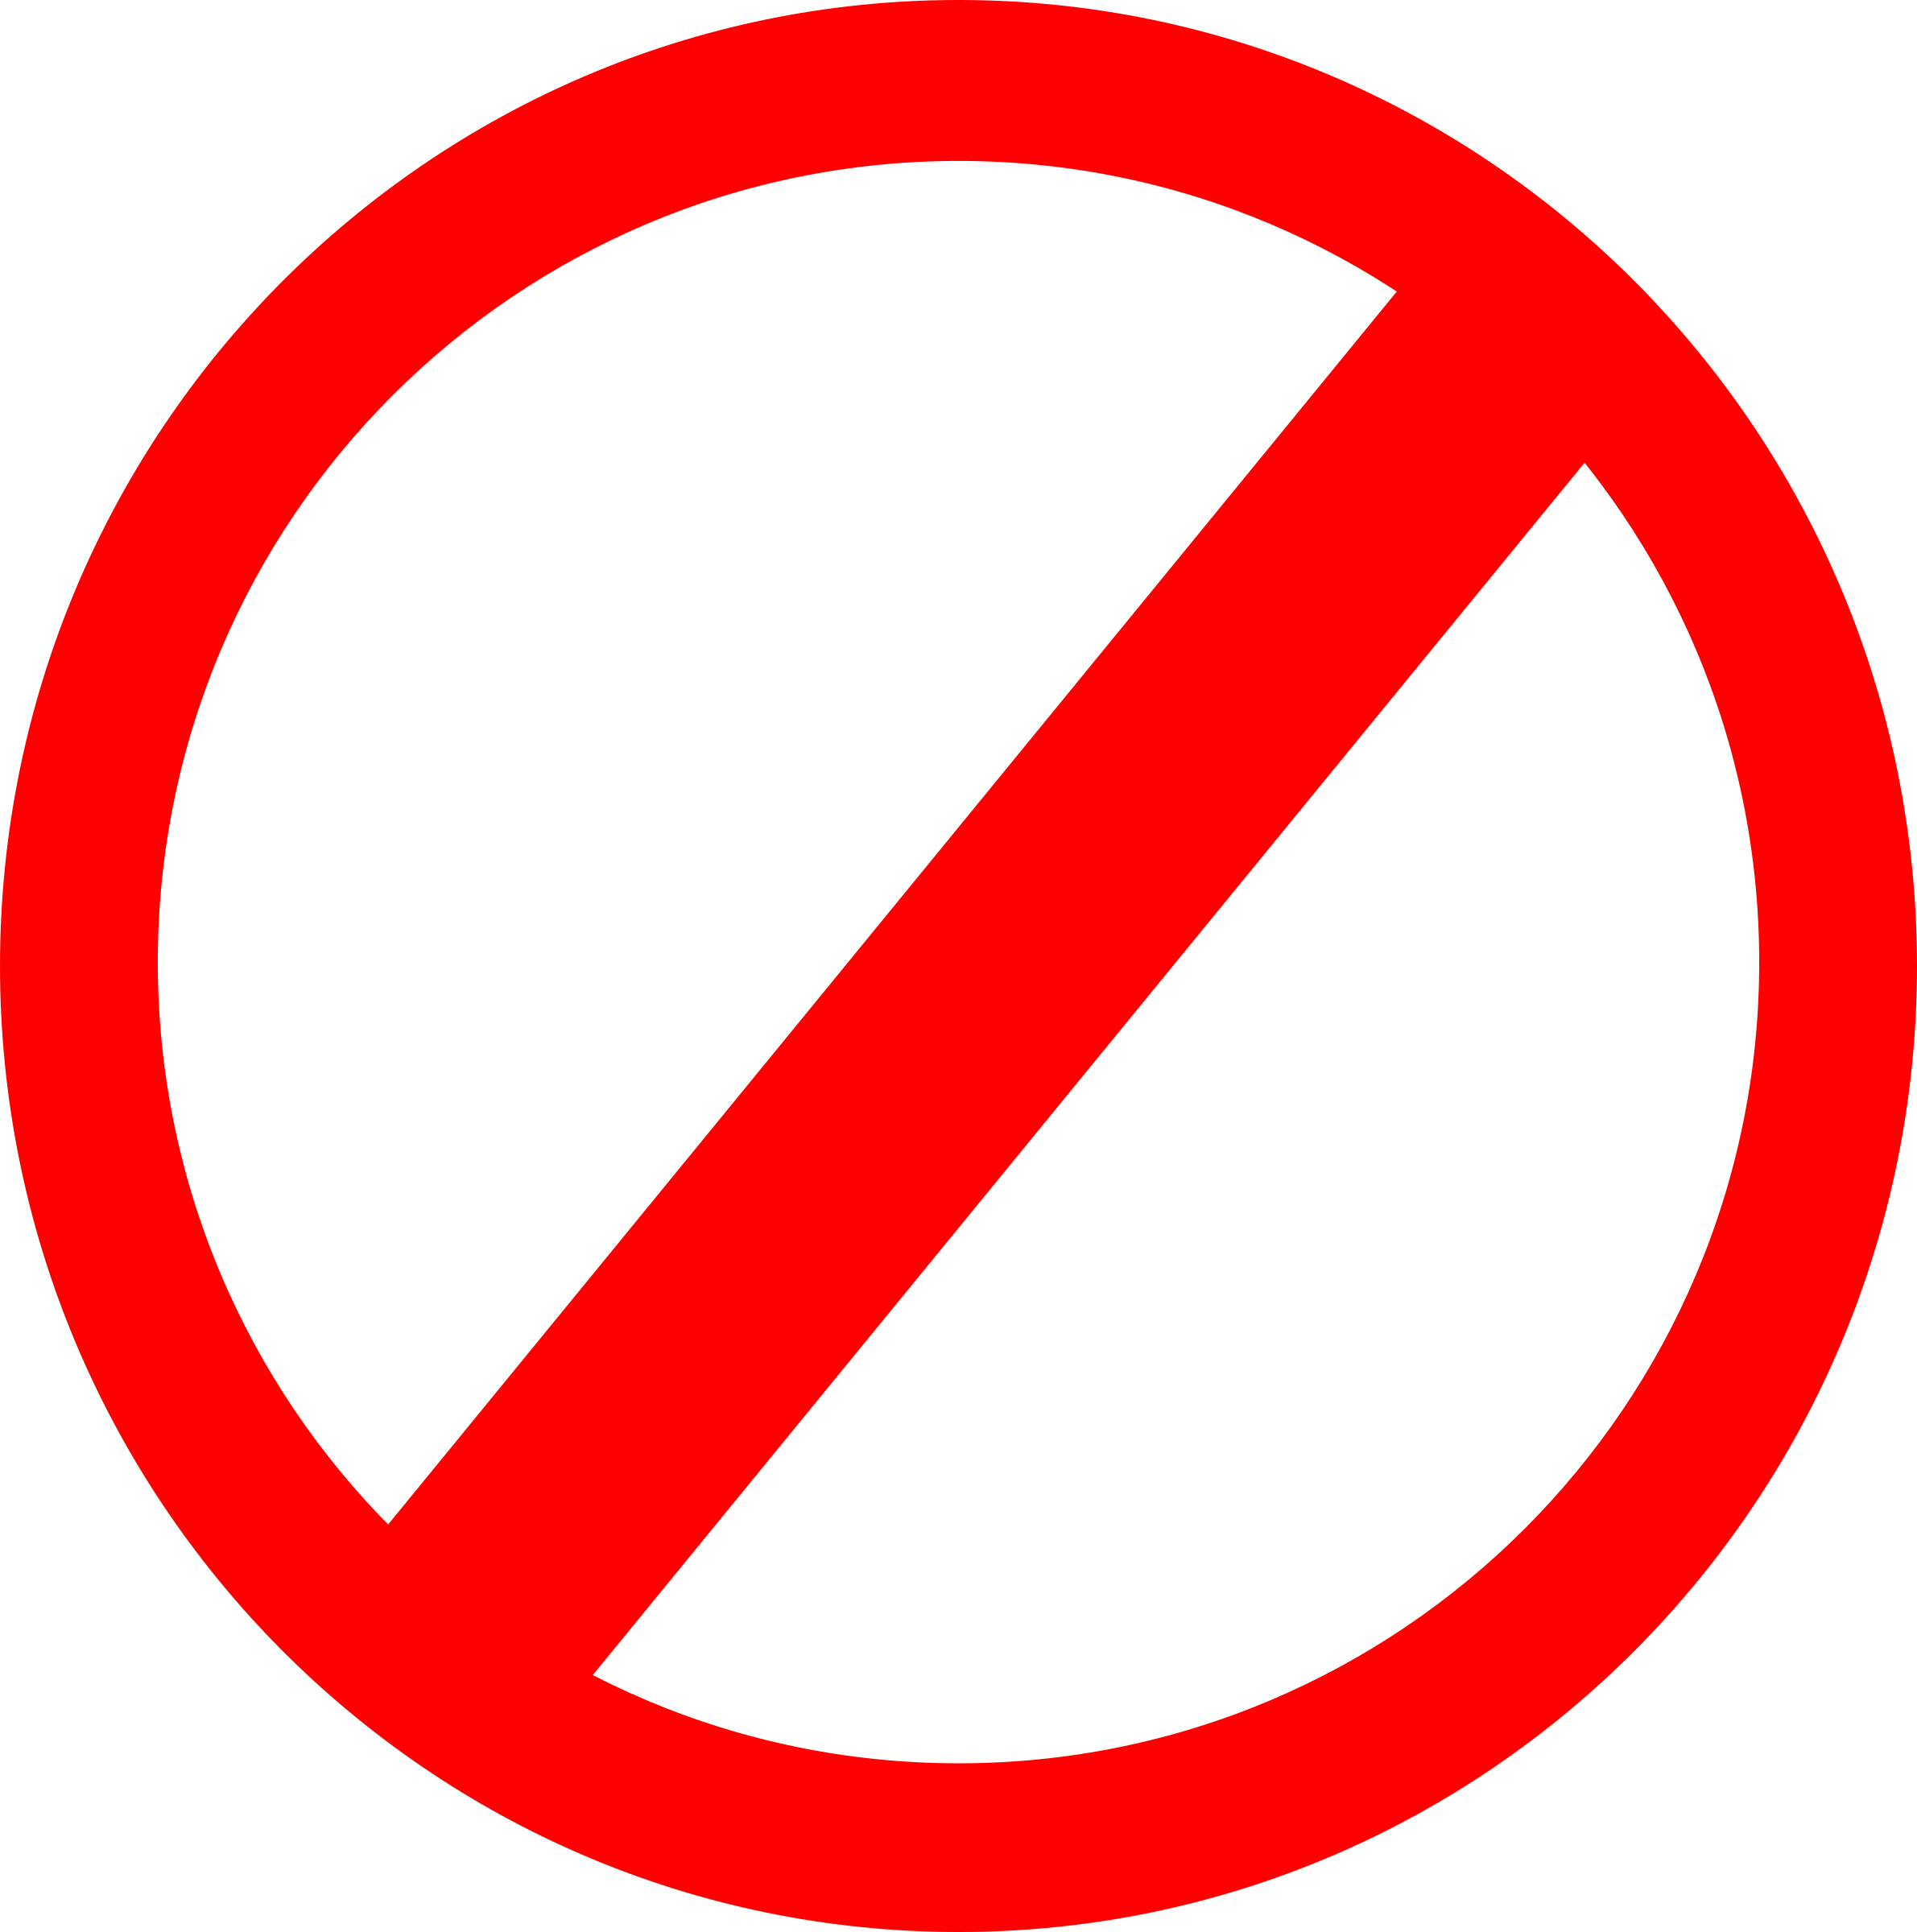 No! png clipart. No sign icons free